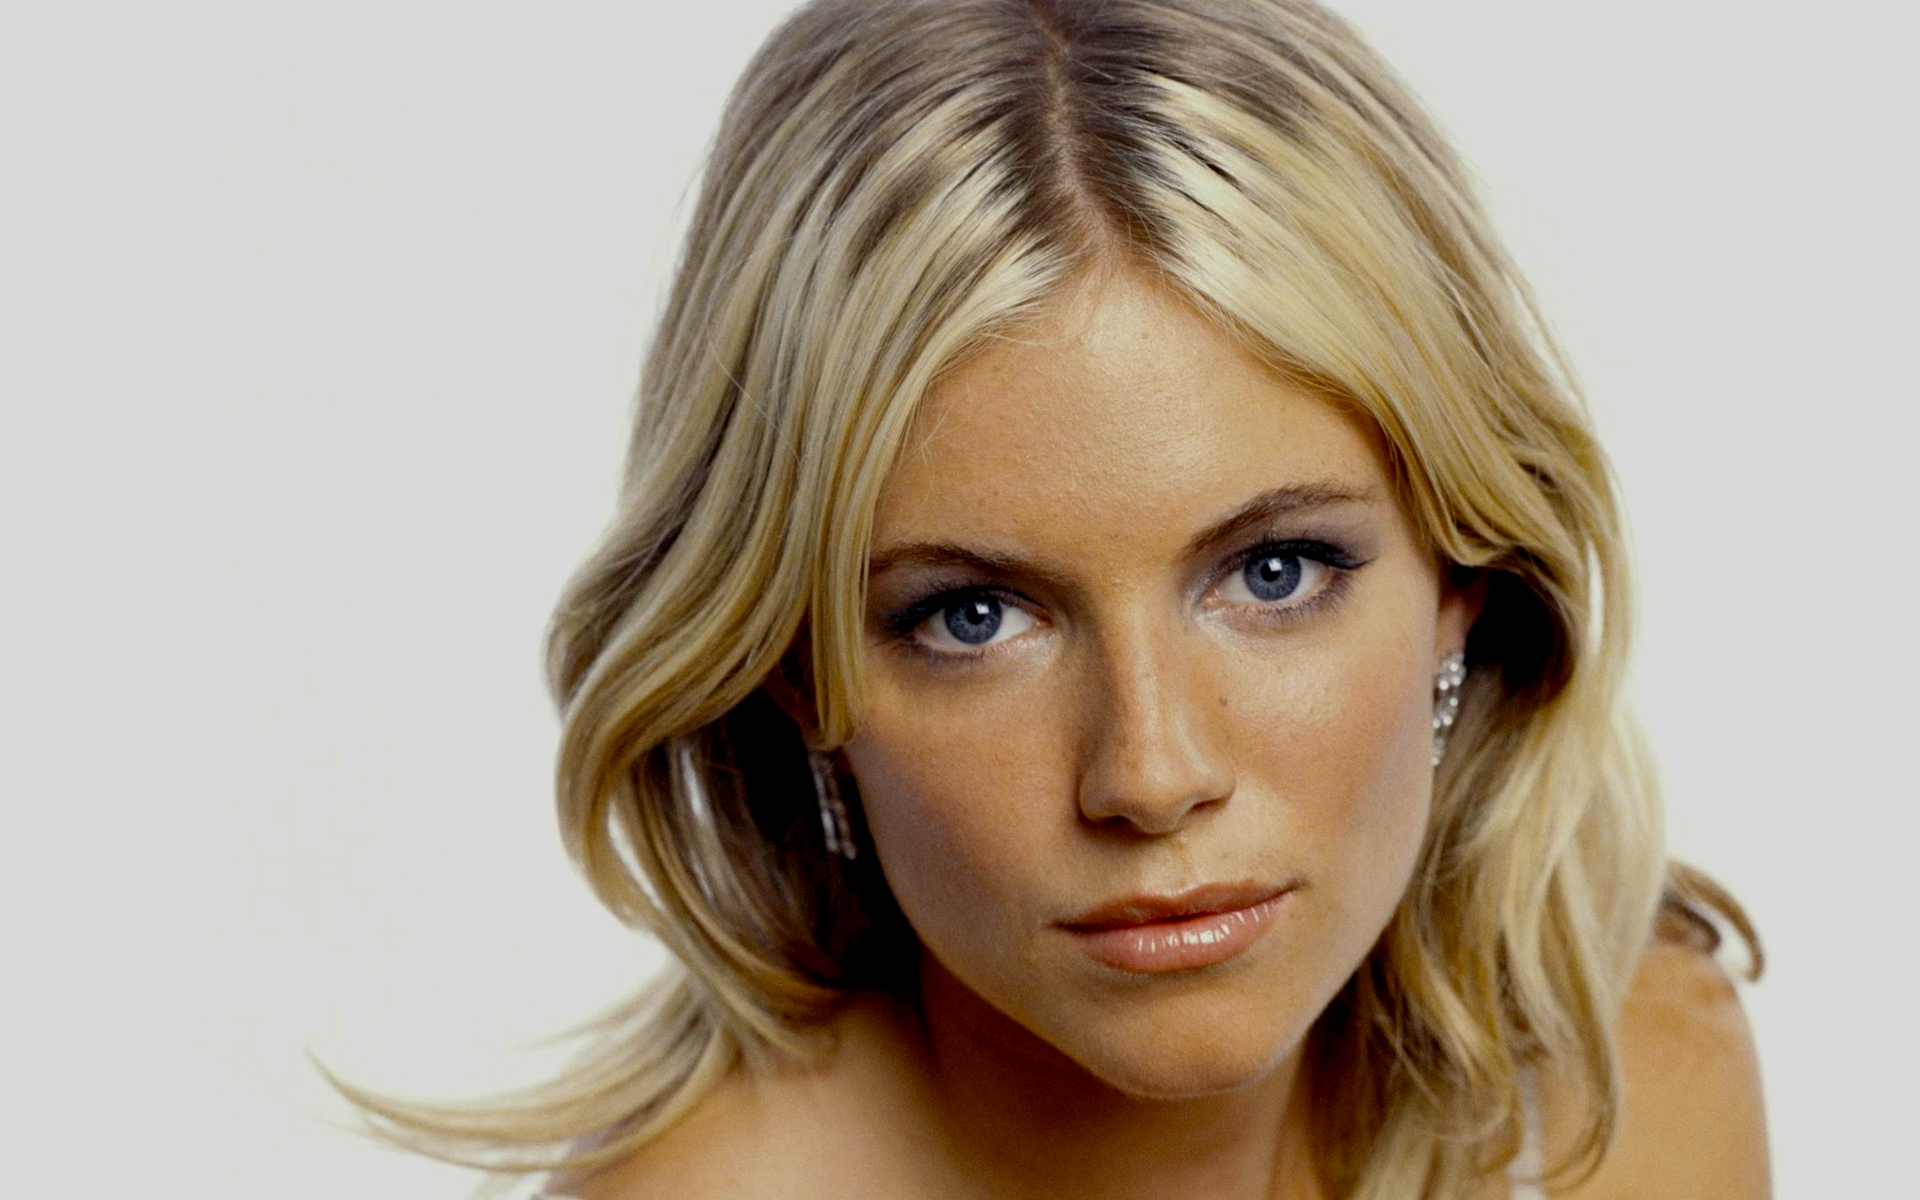 Whit Stillman has a new movie, Love And Friendship, afoot and it now involves the combined talents of Sienna Miller and Chloë Sevigny.